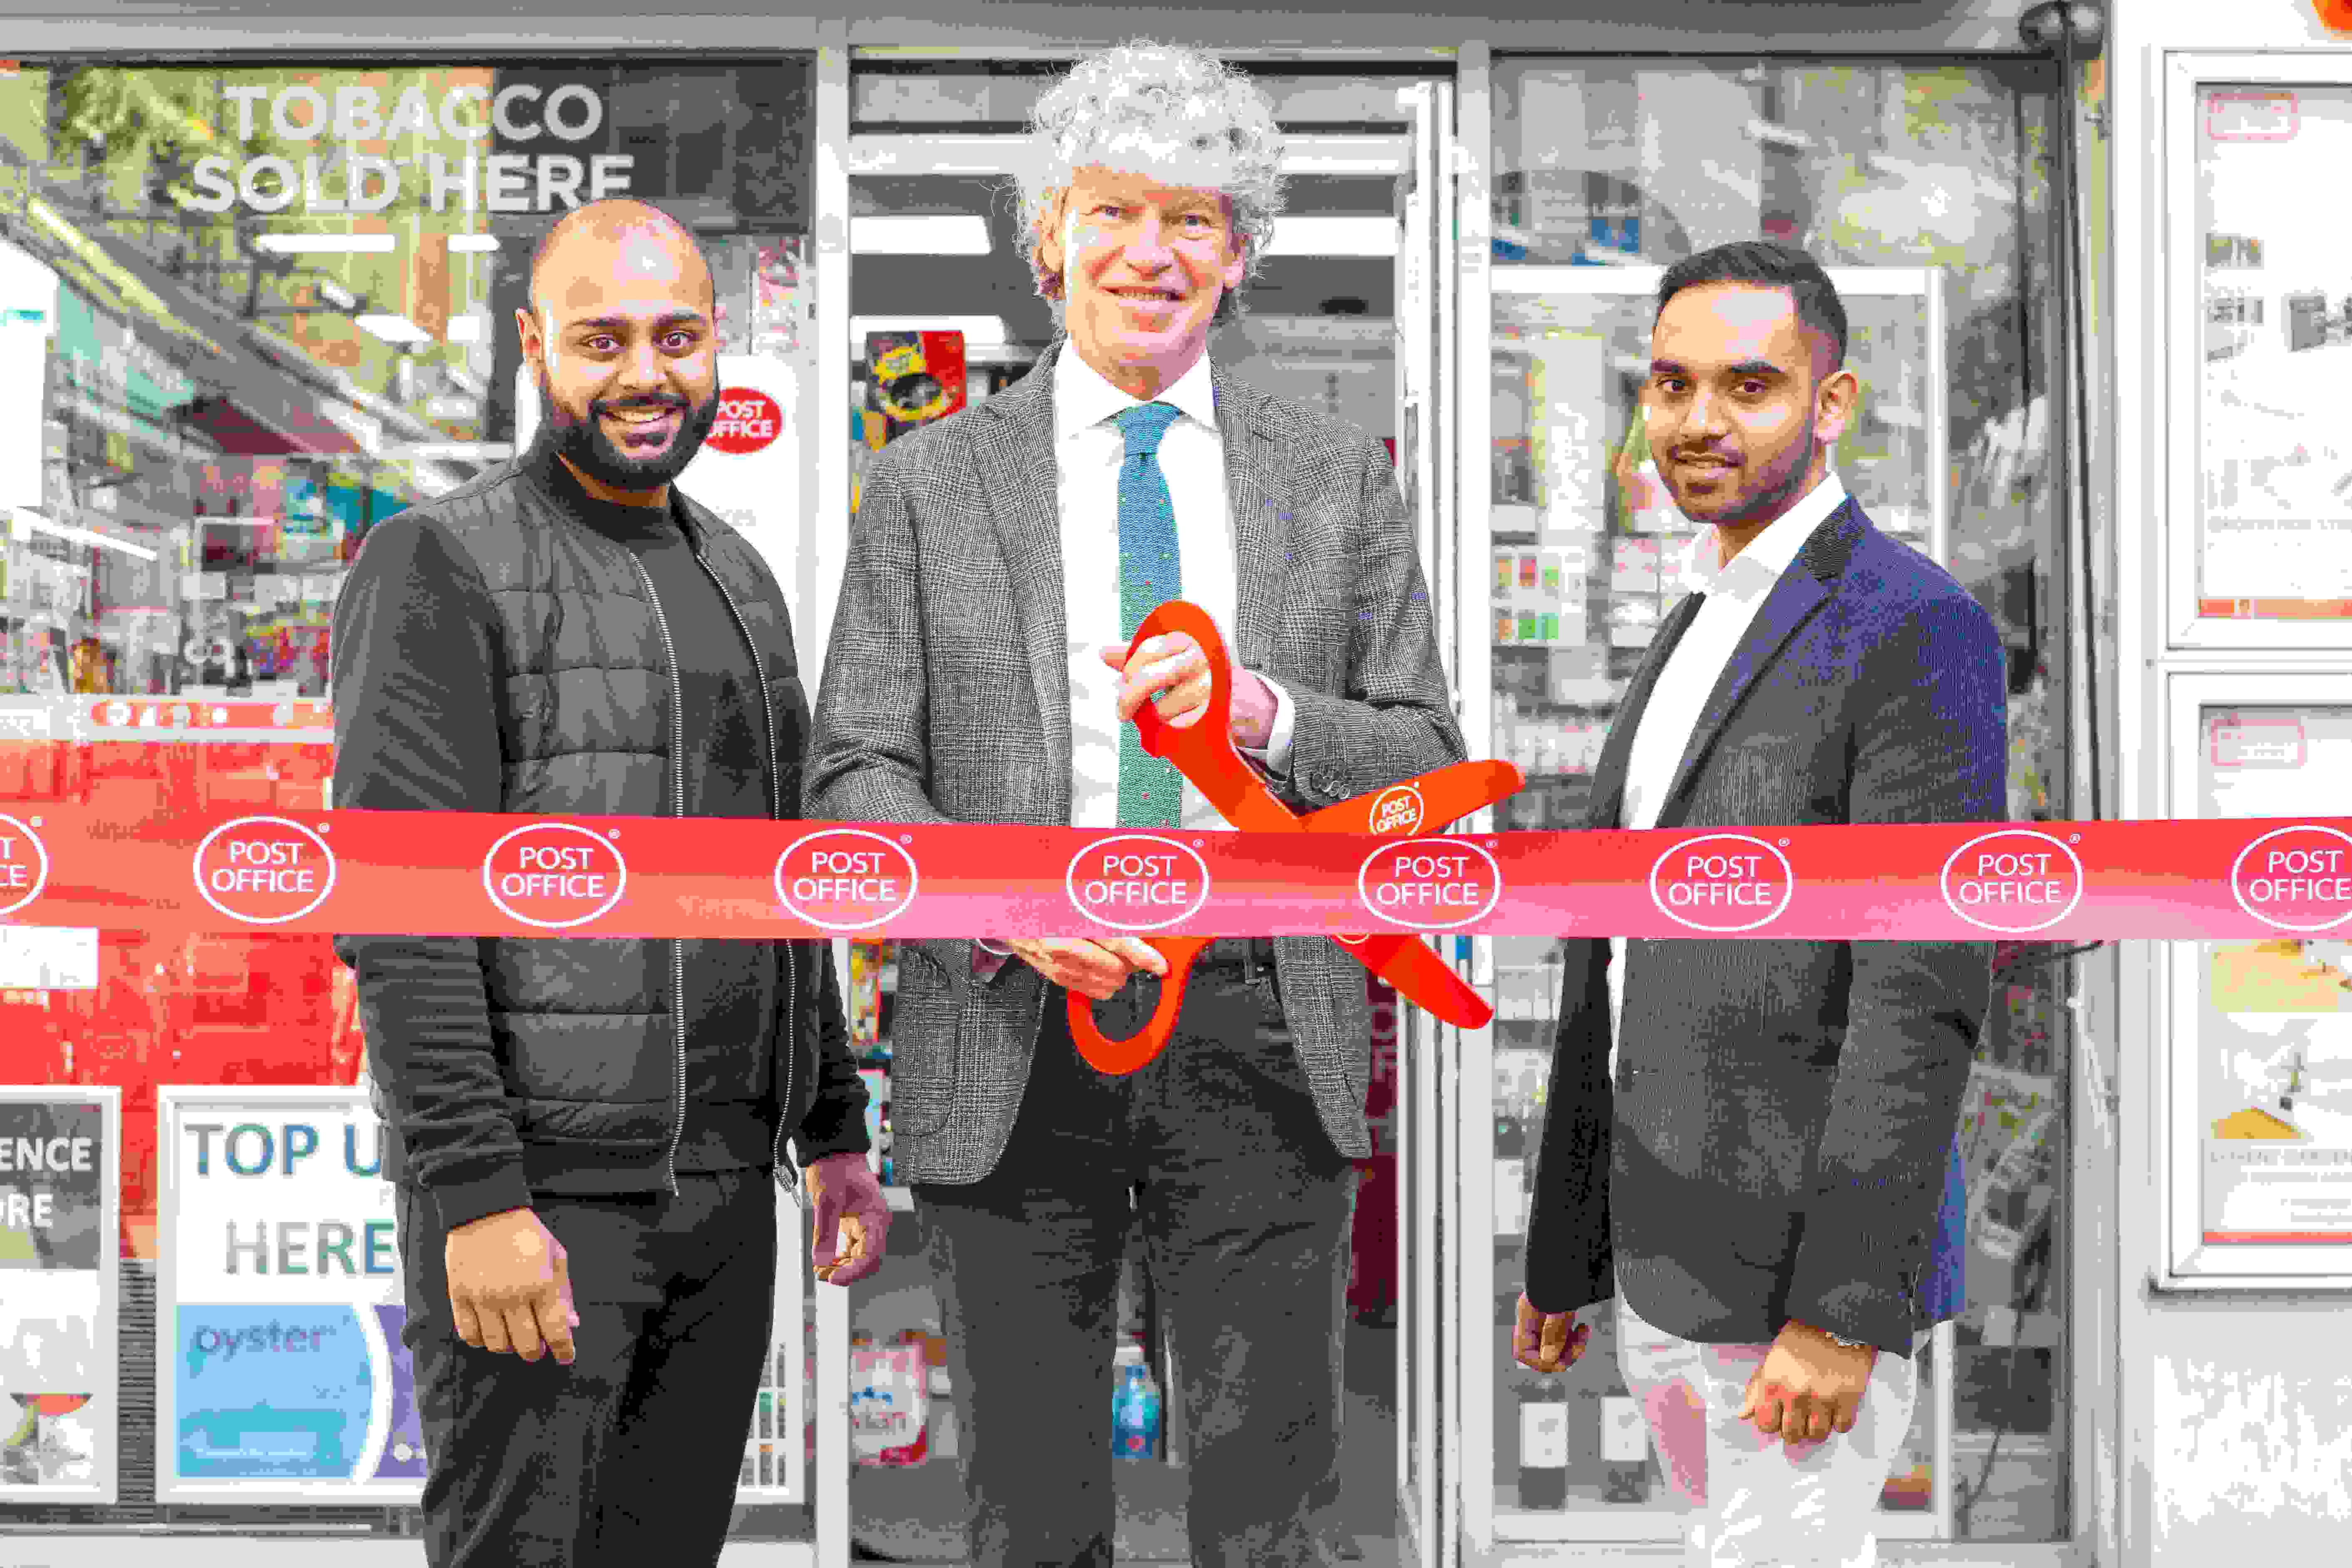 Chairman Opens Busy New London Branch